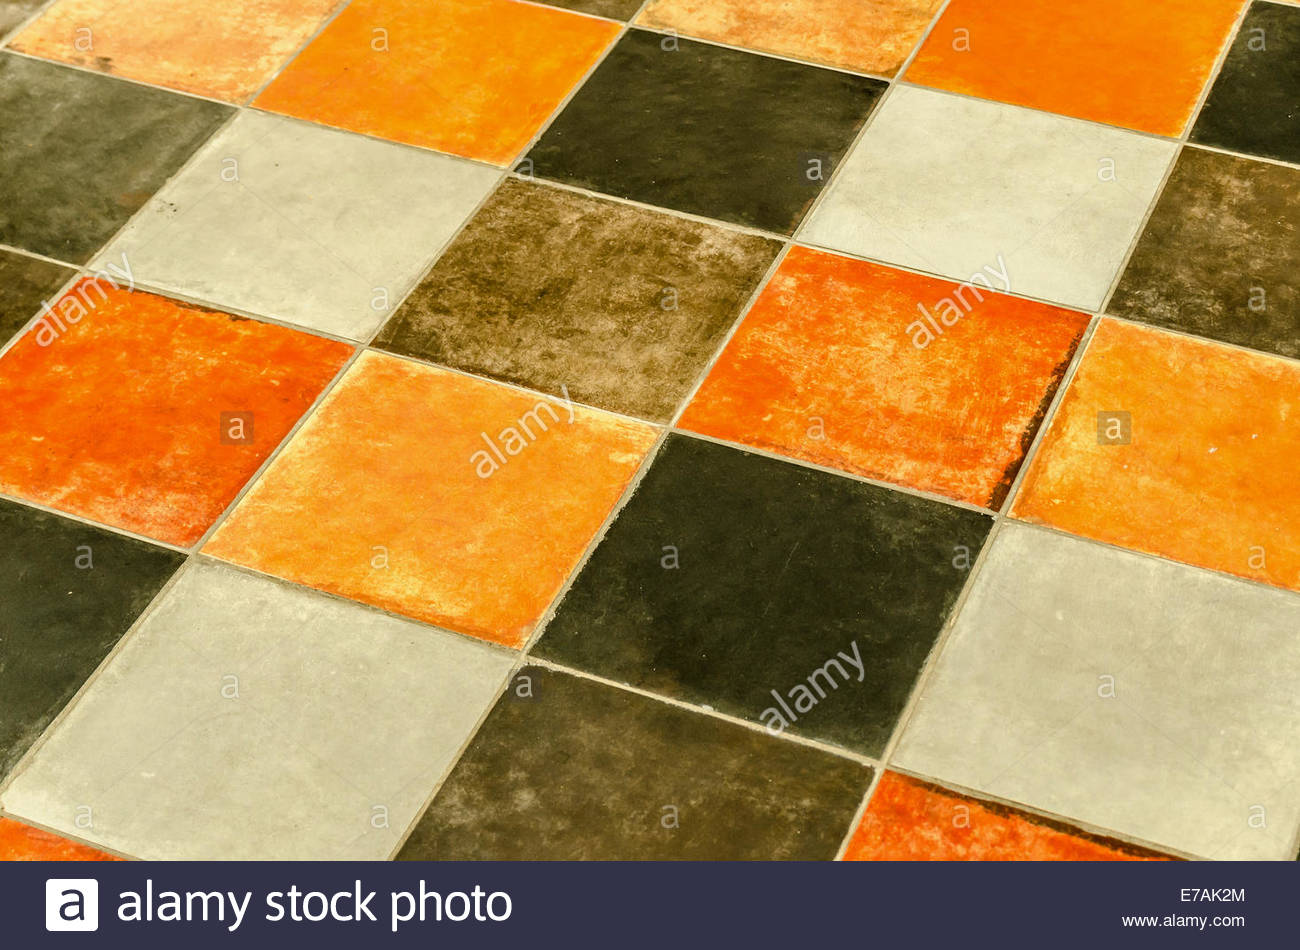 beautiful lamosa tile suppliers #4: Amazing Lamosa Tile Suppliers #3: Mulia Ceramic Tile Distributors Choice  Image Tile Flooring Lamosa Ceramic Tile Choice Image Tile Flooring Design